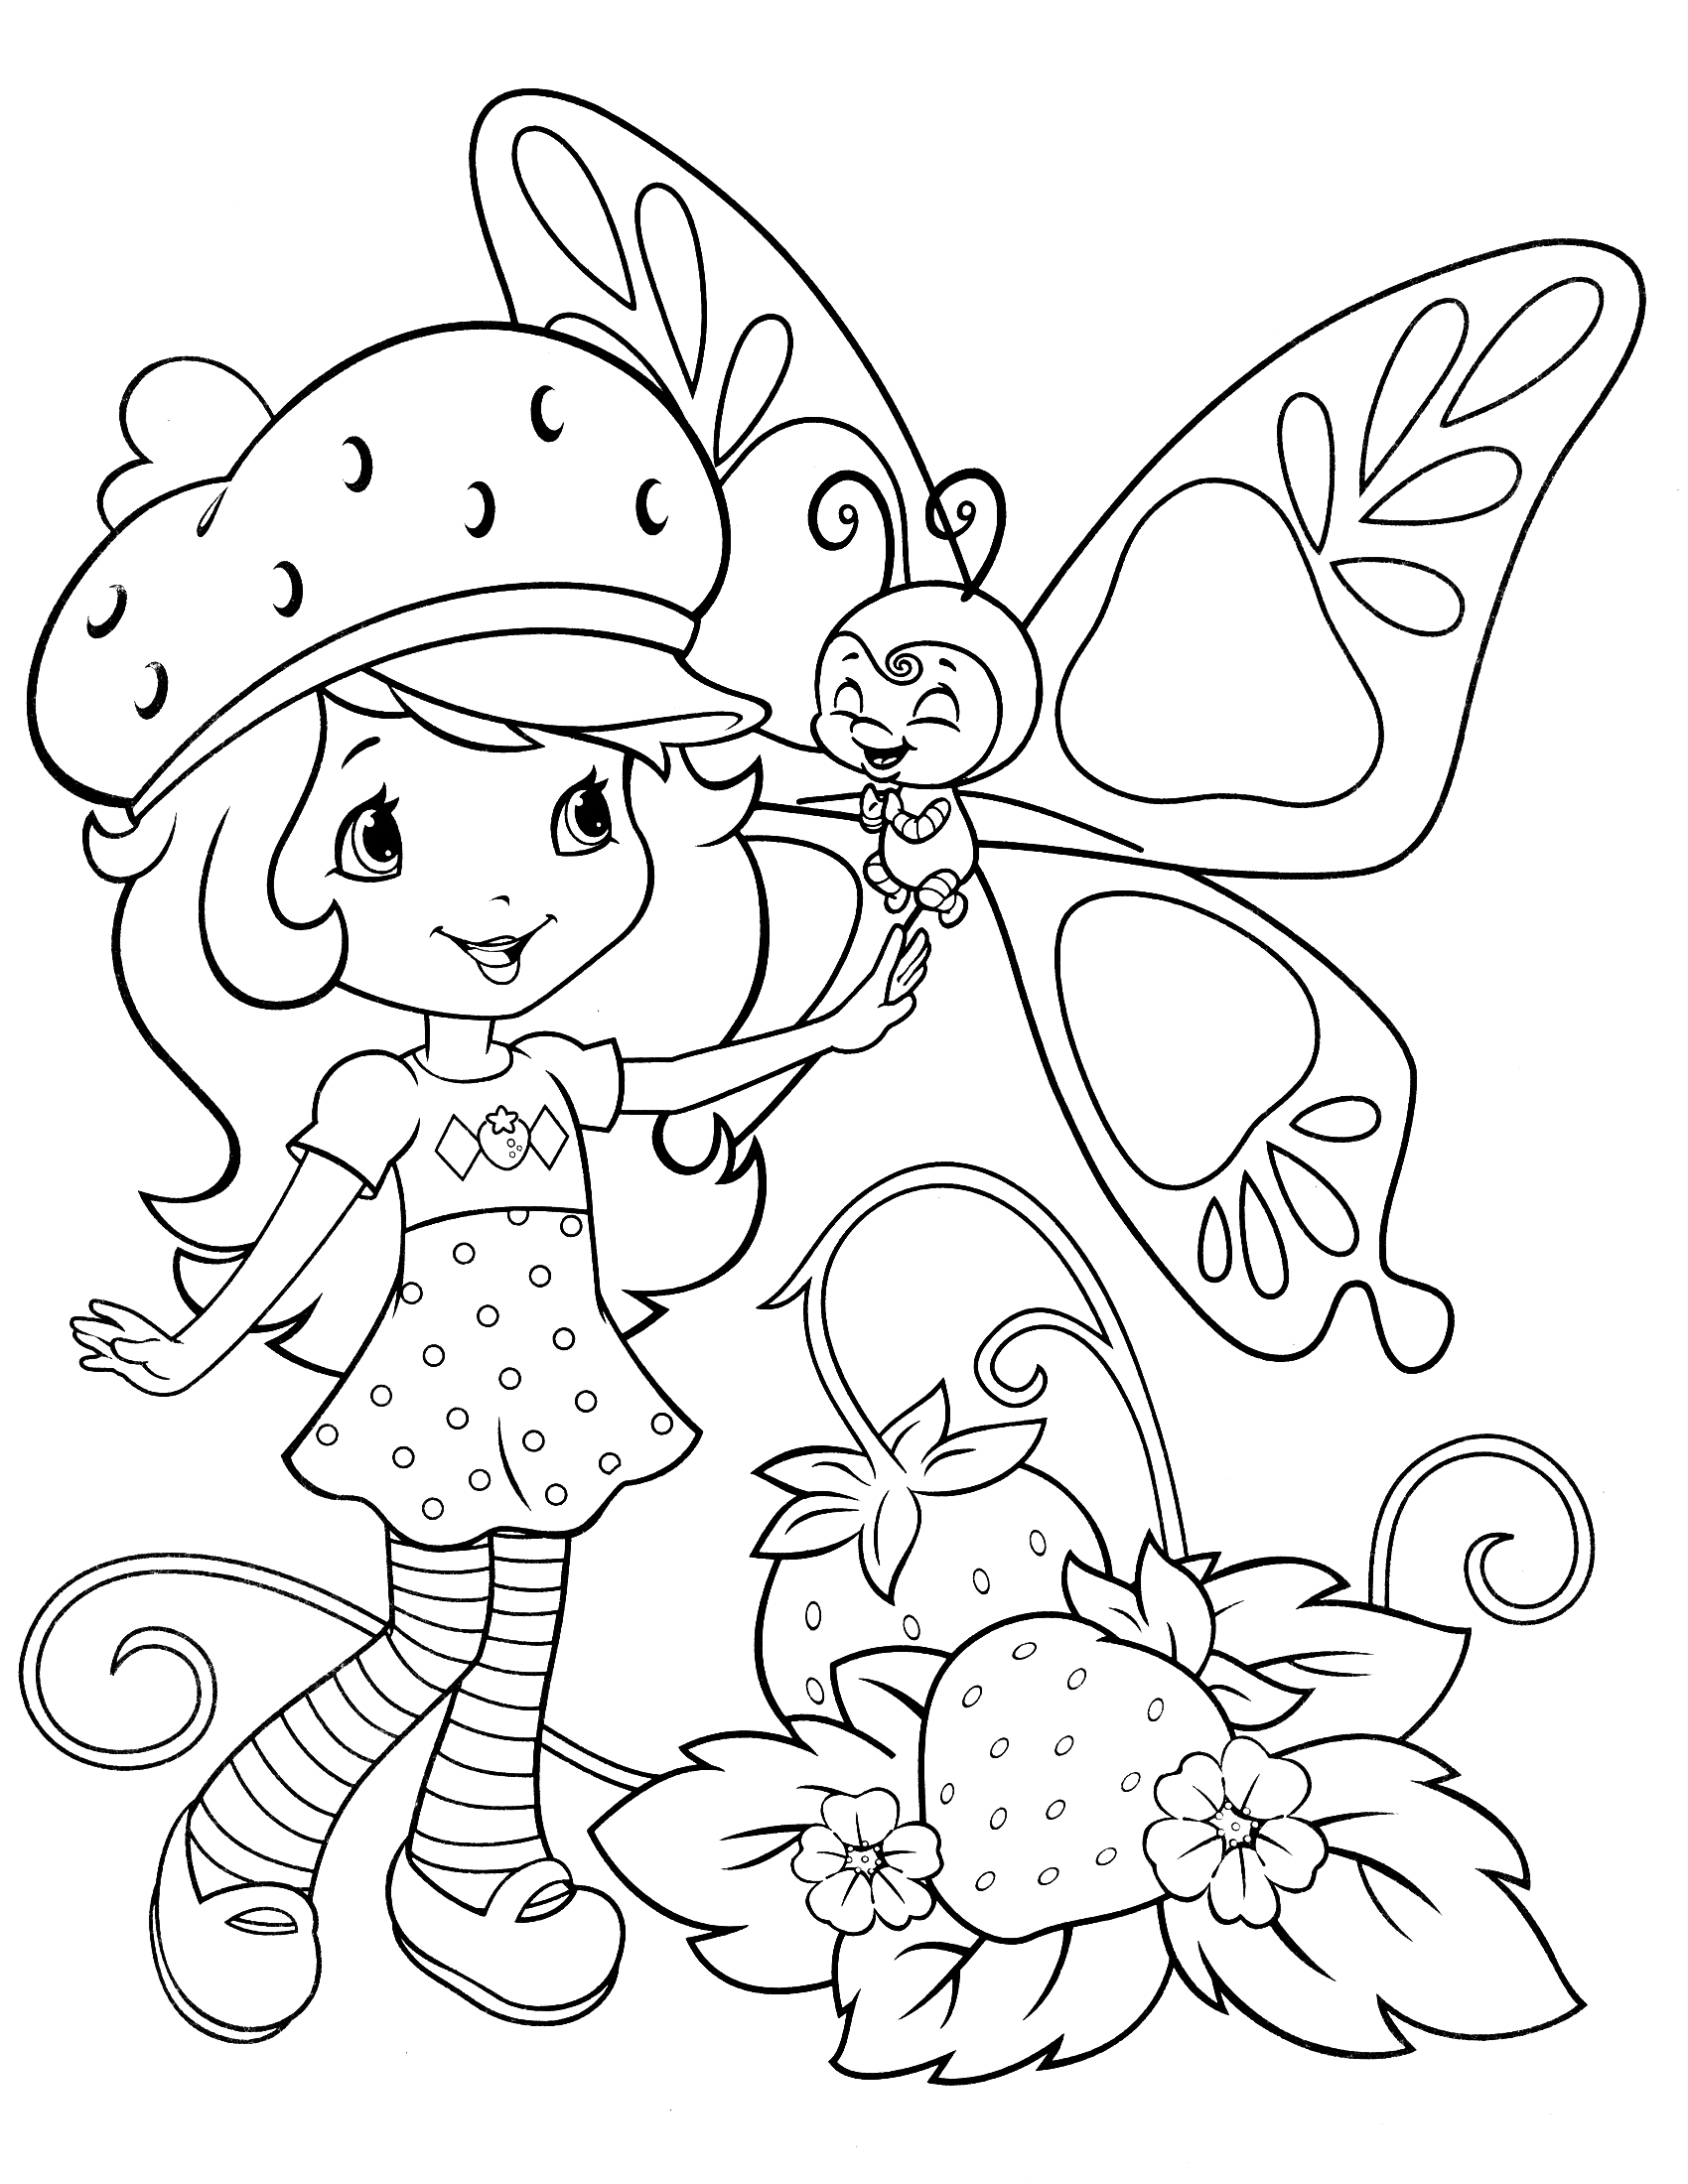 Strawberry Shortcake Coloring Books Whole Coloring Pages